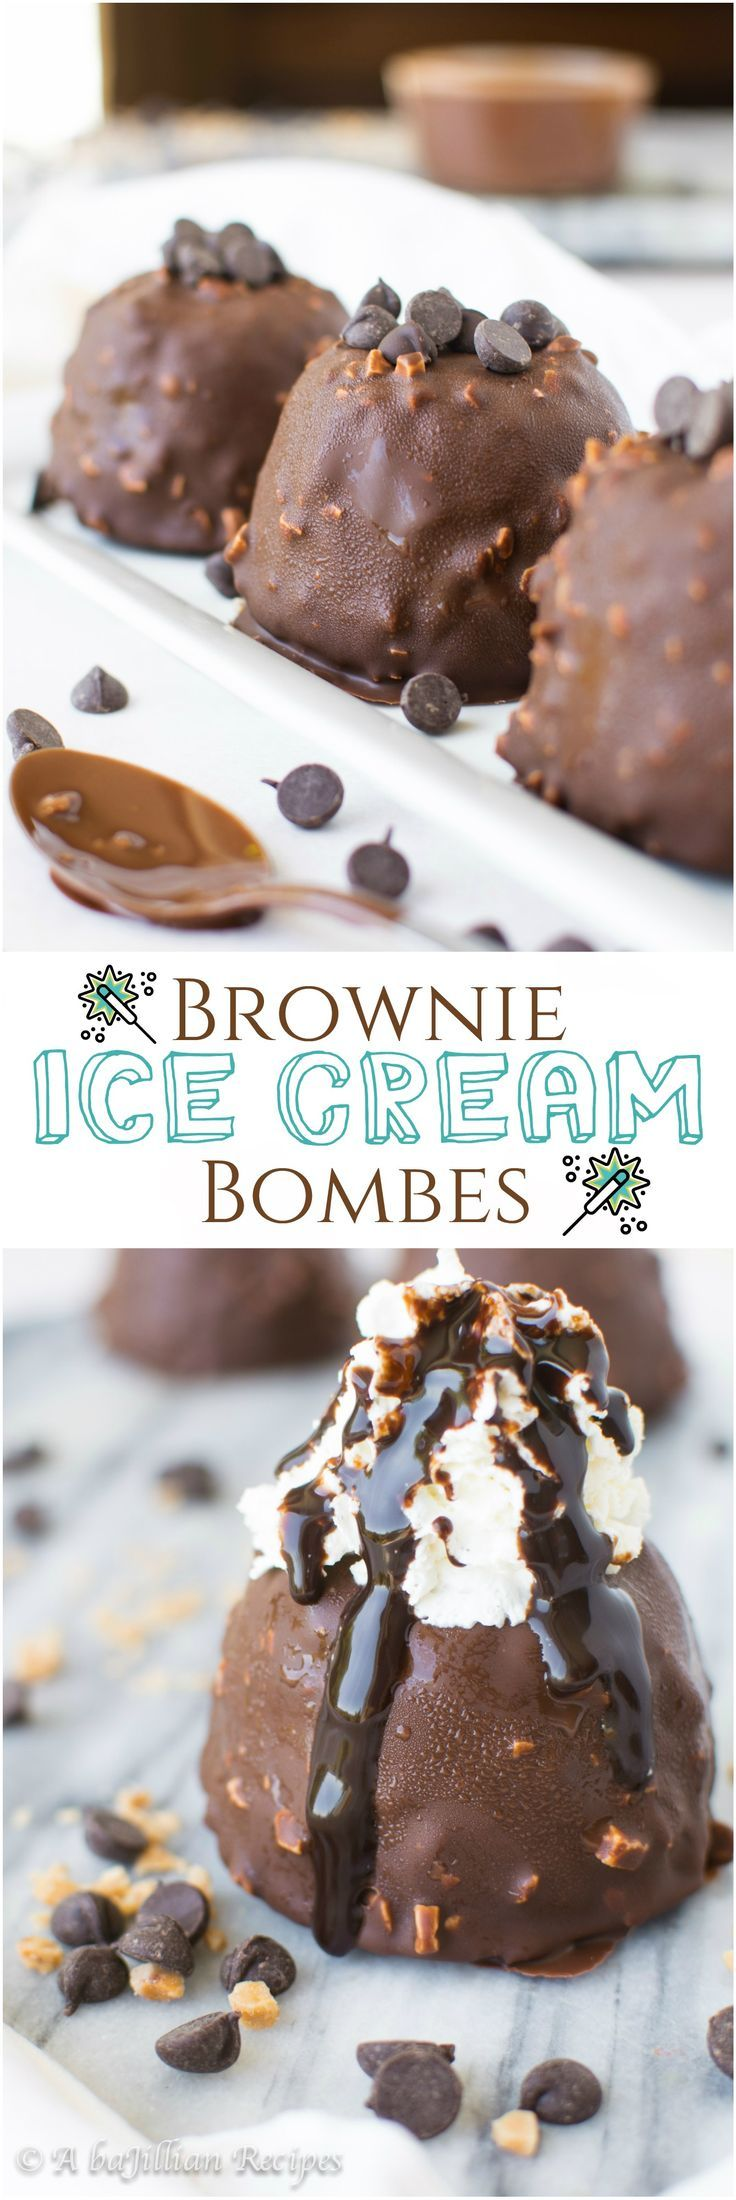 Brownie Ice Cream Bombs | A baJillian Recipes